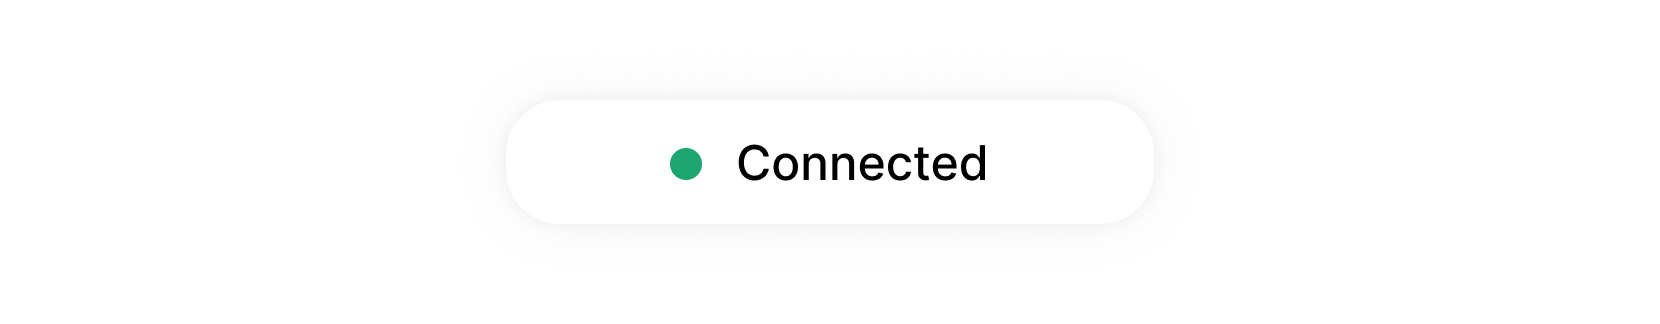 A green dot with the text 'connected' demonstrating the new last seen indicator in the admin panel.